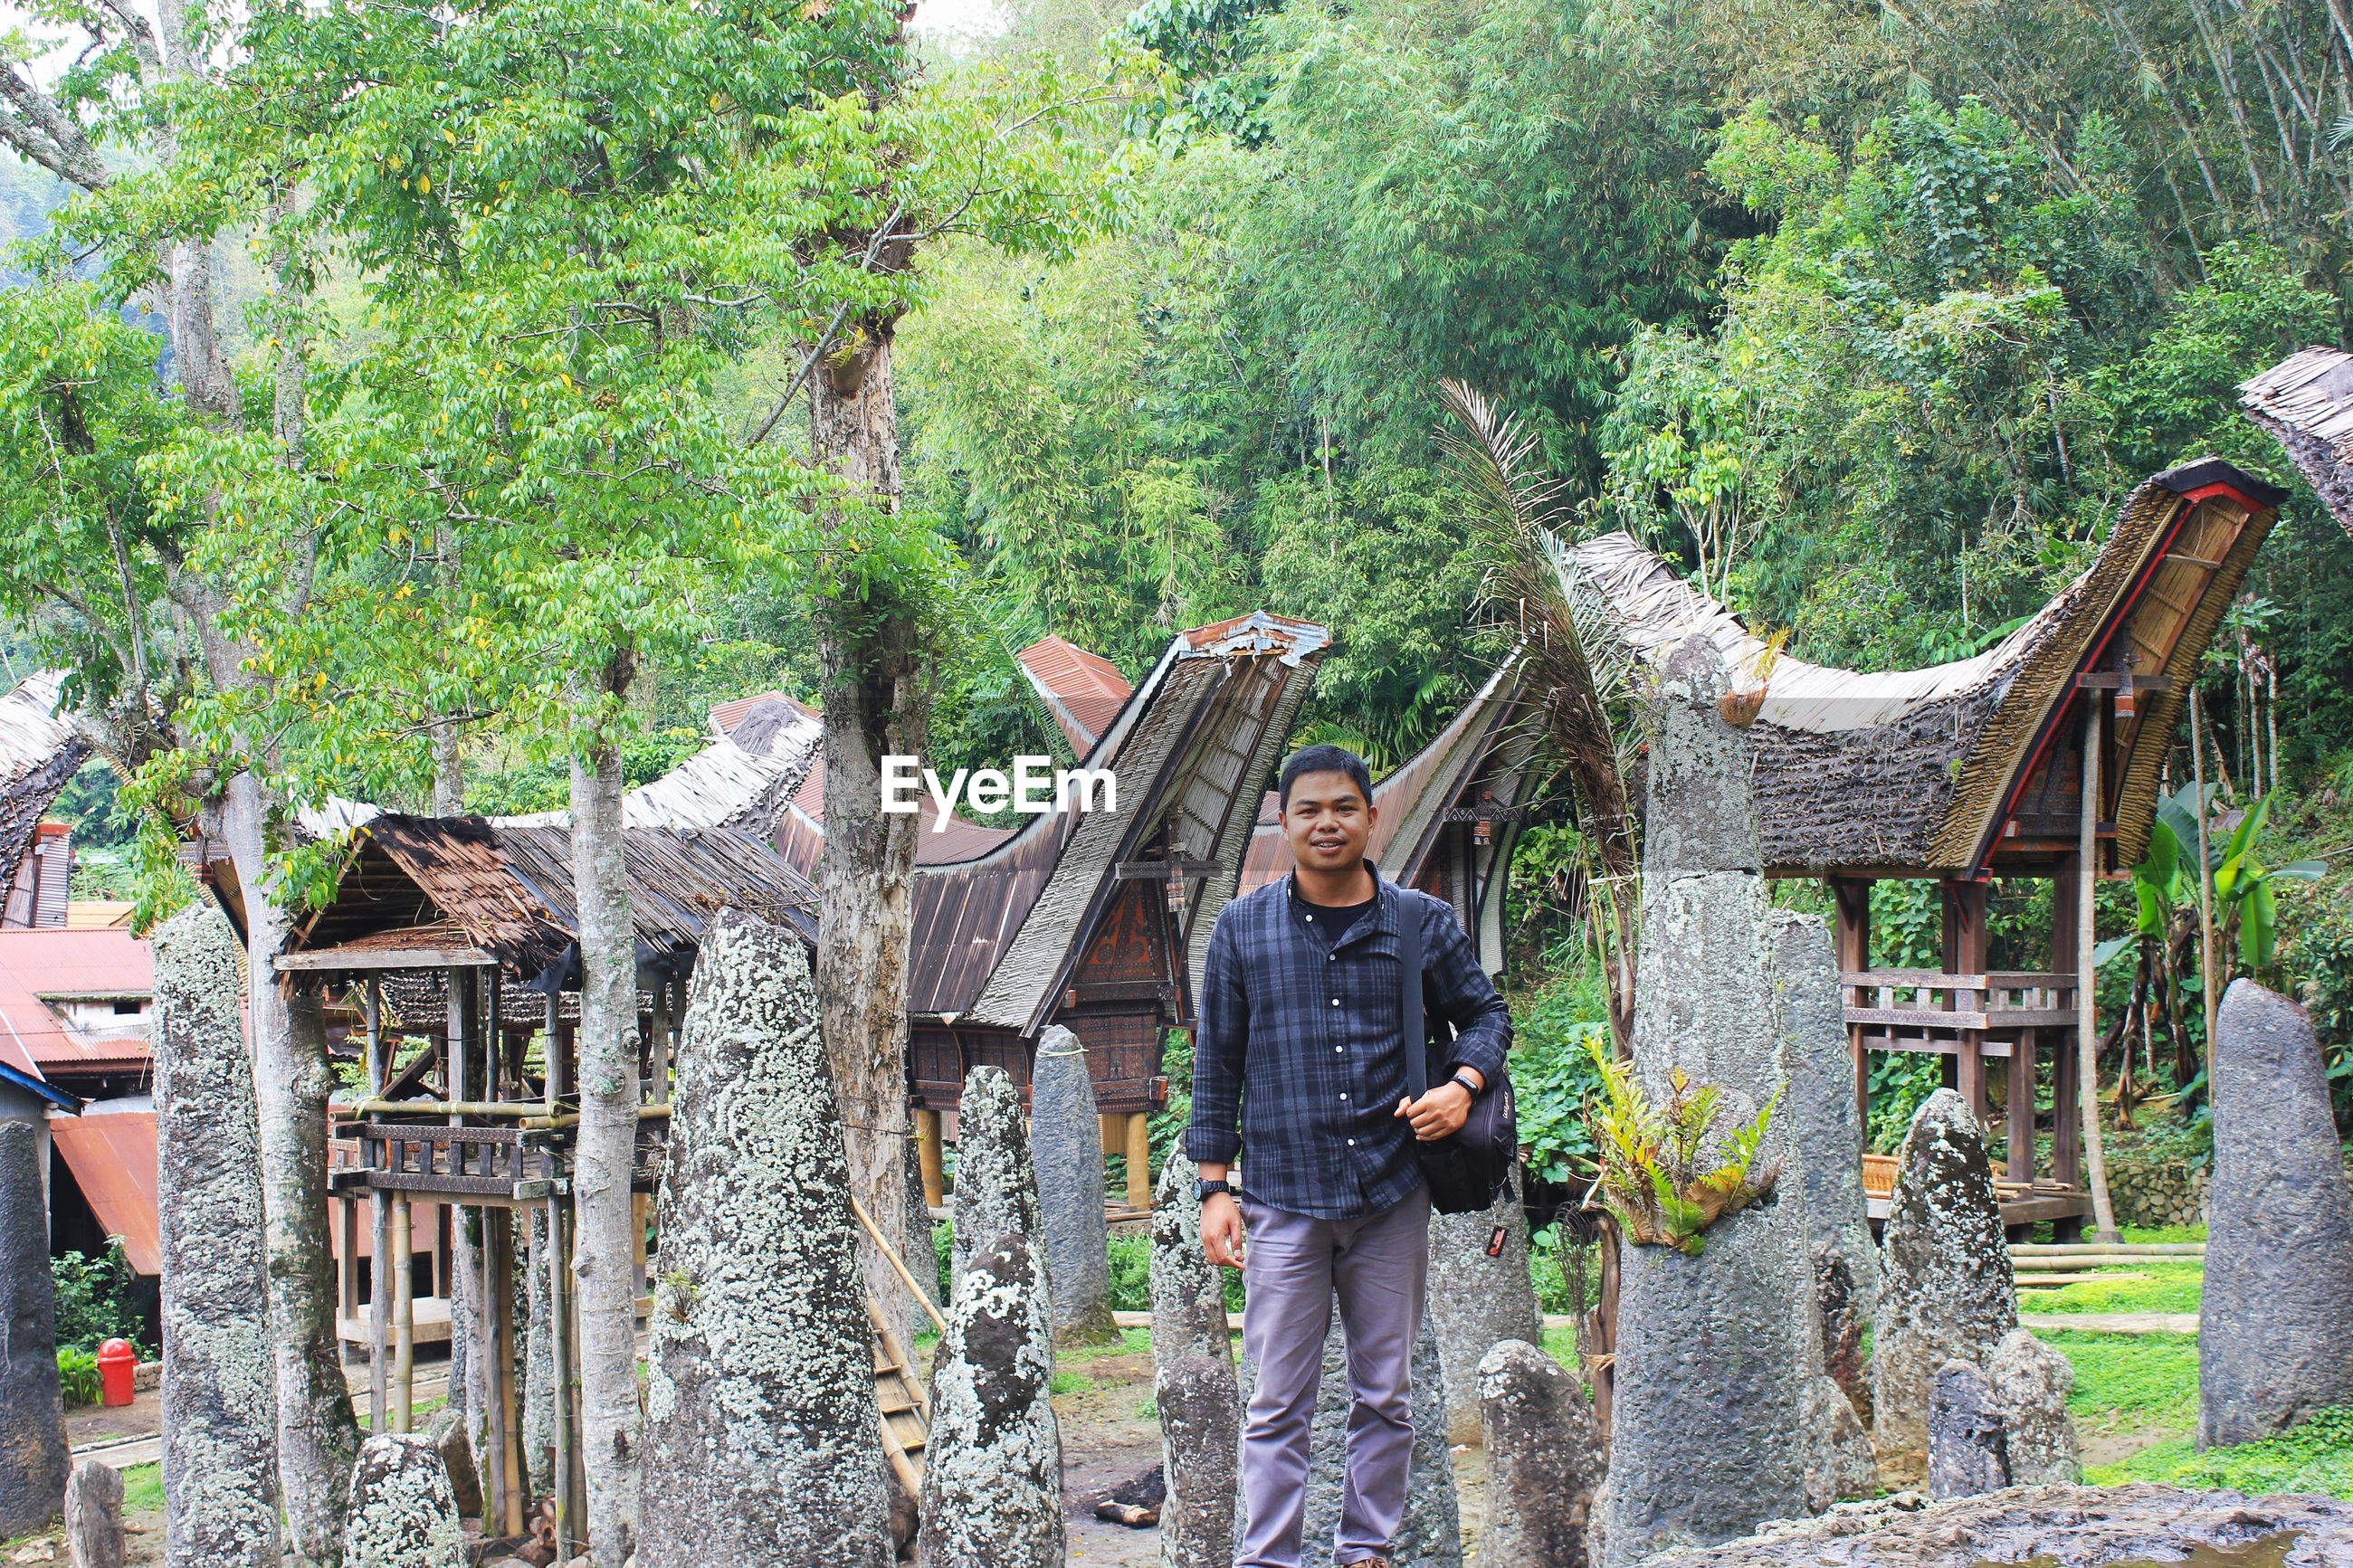 Portrait of man standing by traditional built structures against trees